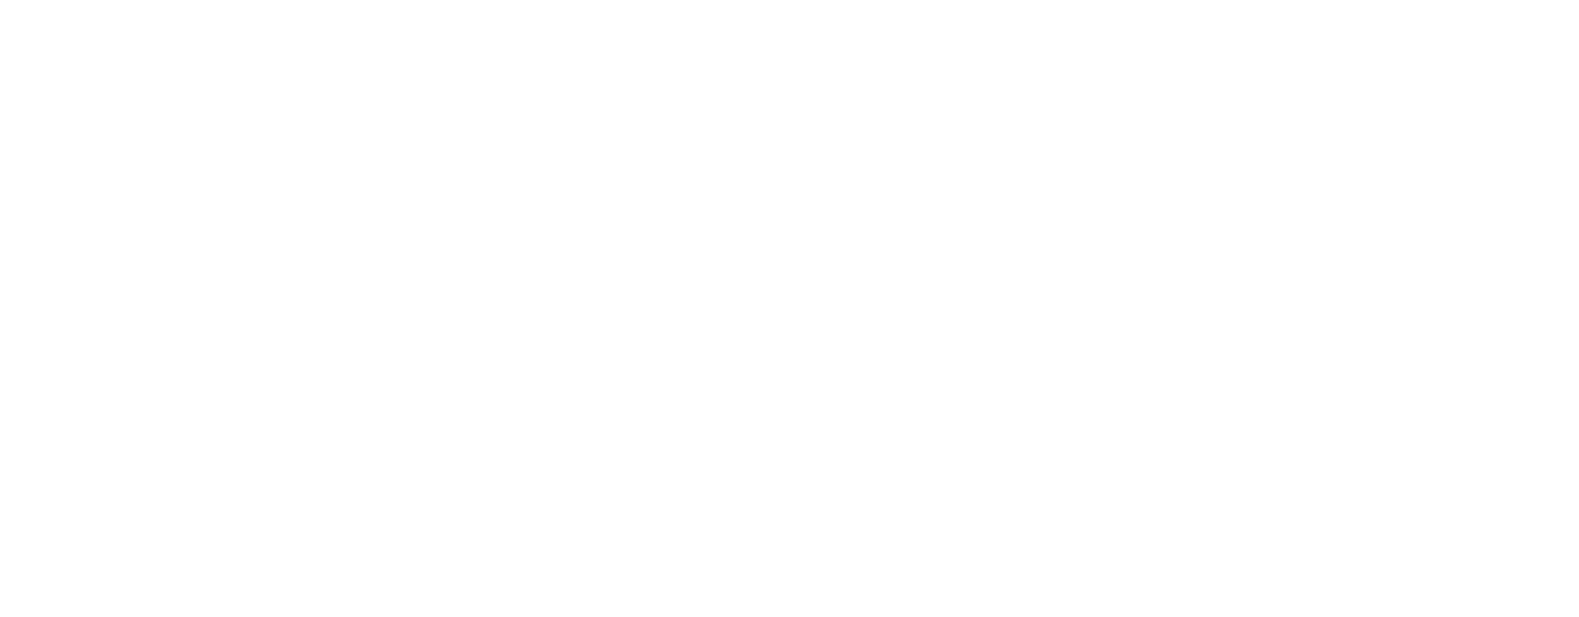 X2 Payment Systems